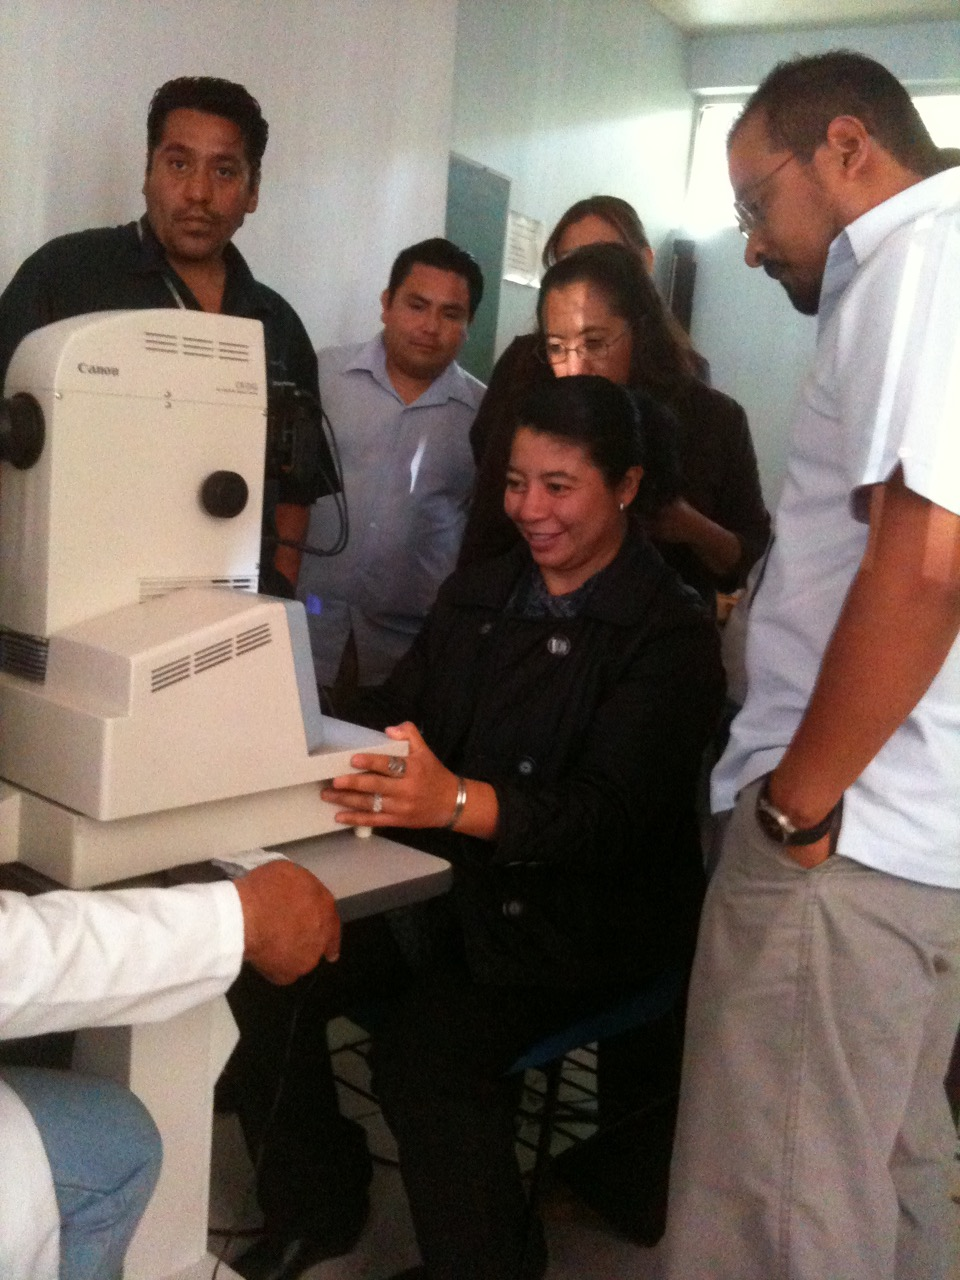 Primary Care Physicians in Guanajuato, Mexico, practice their newly learned digital retinal imaging skills for diabetic retinopathy screening.